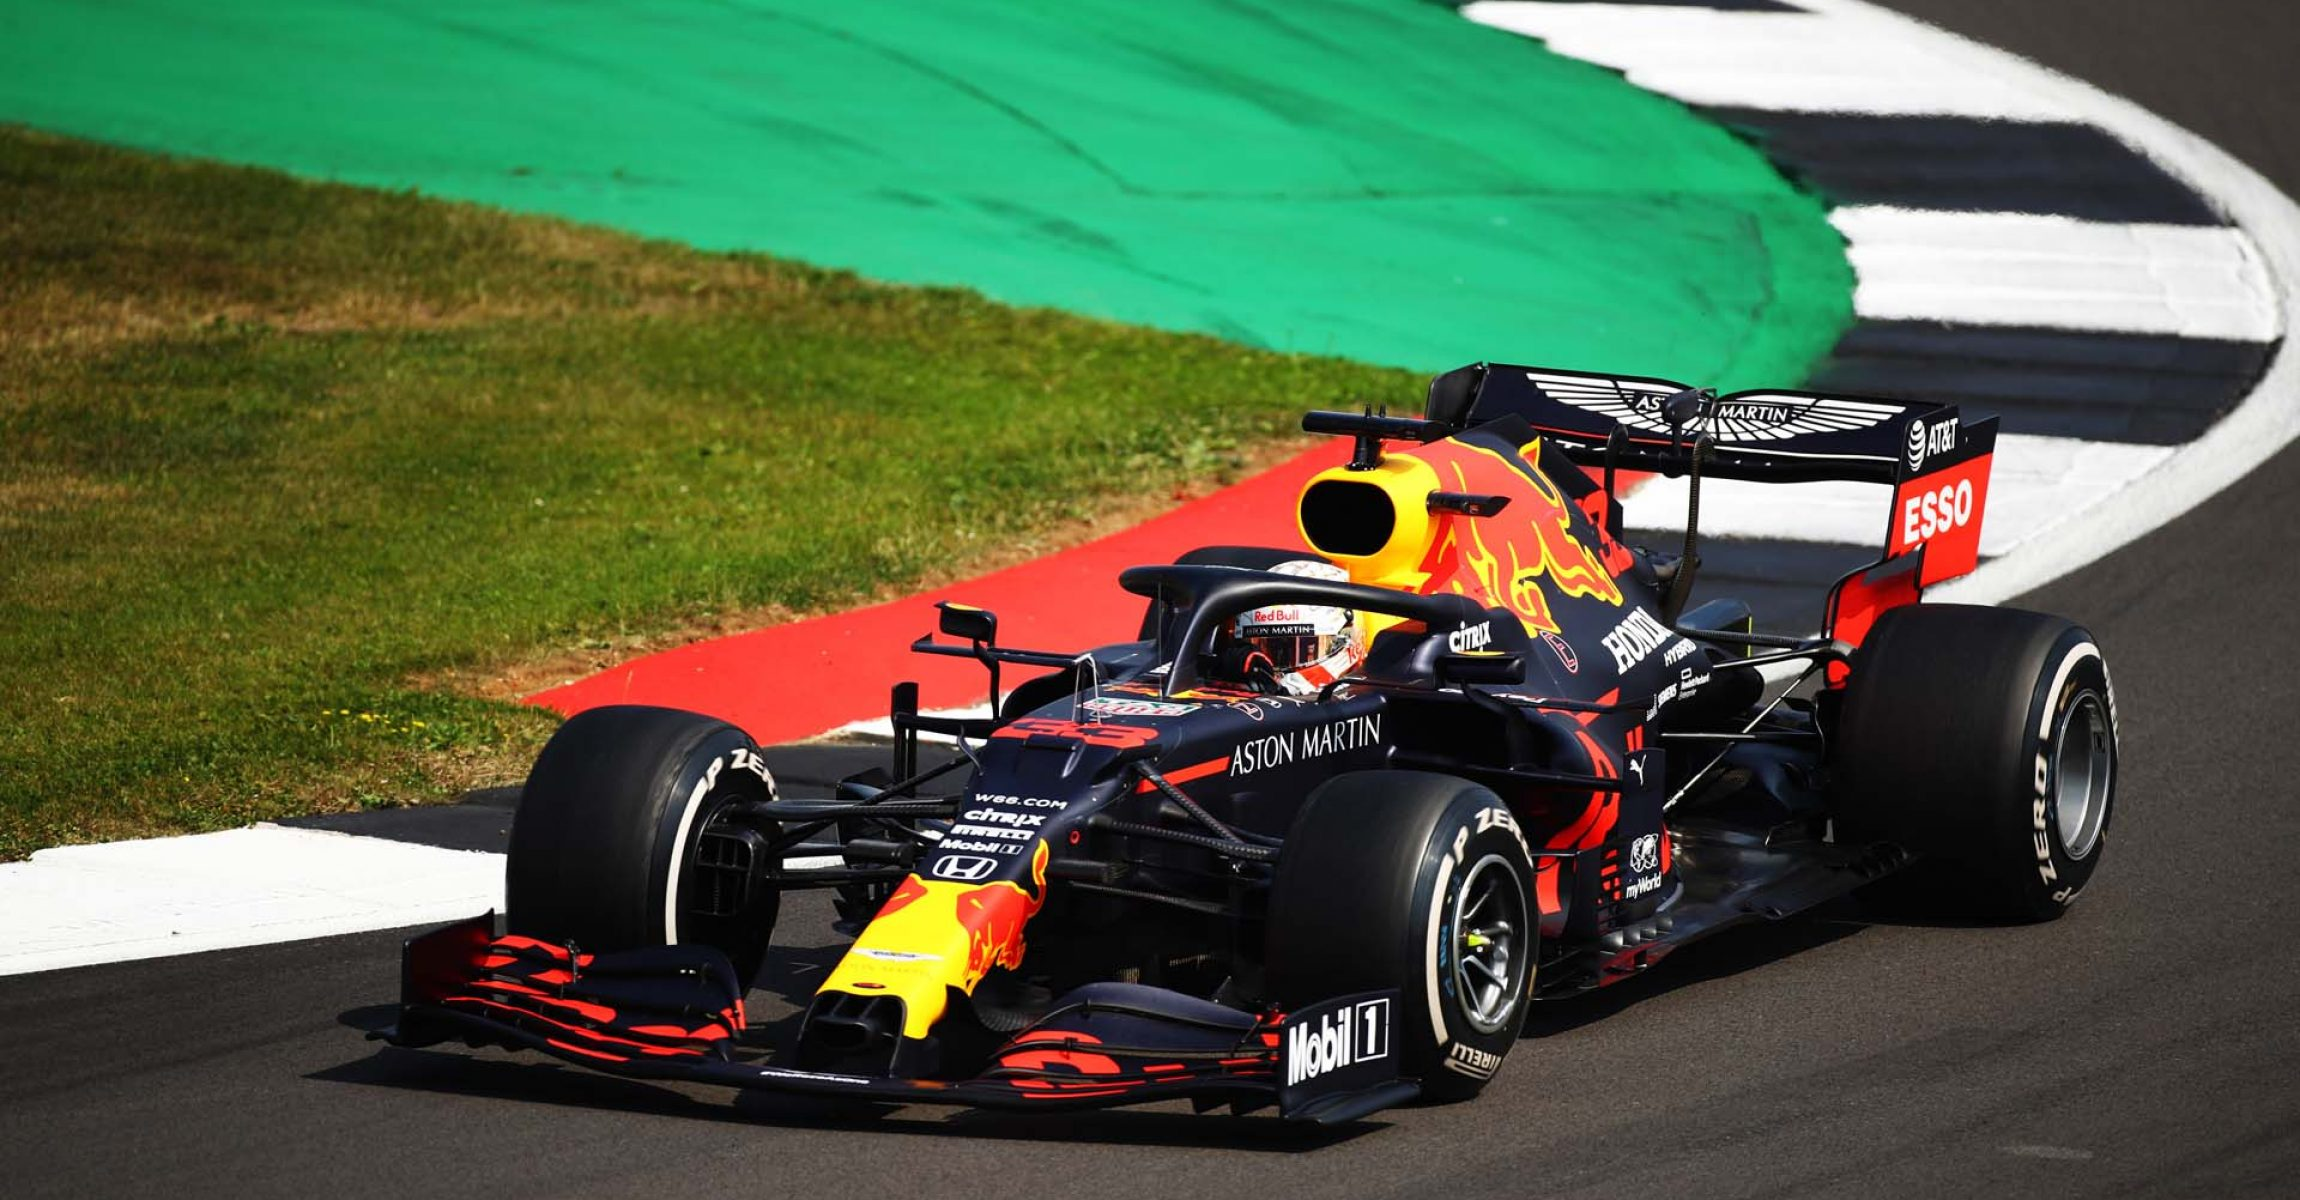 NORTHAMPTON, ENGLAND - AUGUST 09: Max Verstappen of the Netherlands driving the (33) Aston Martin Red Bull Racing RB16 on track during the F1 70th Anniversary Grand Prix at Silverstone on August 09, 2020 in Northampton, England. (Photo by Bryn Lennon/Getty Images)